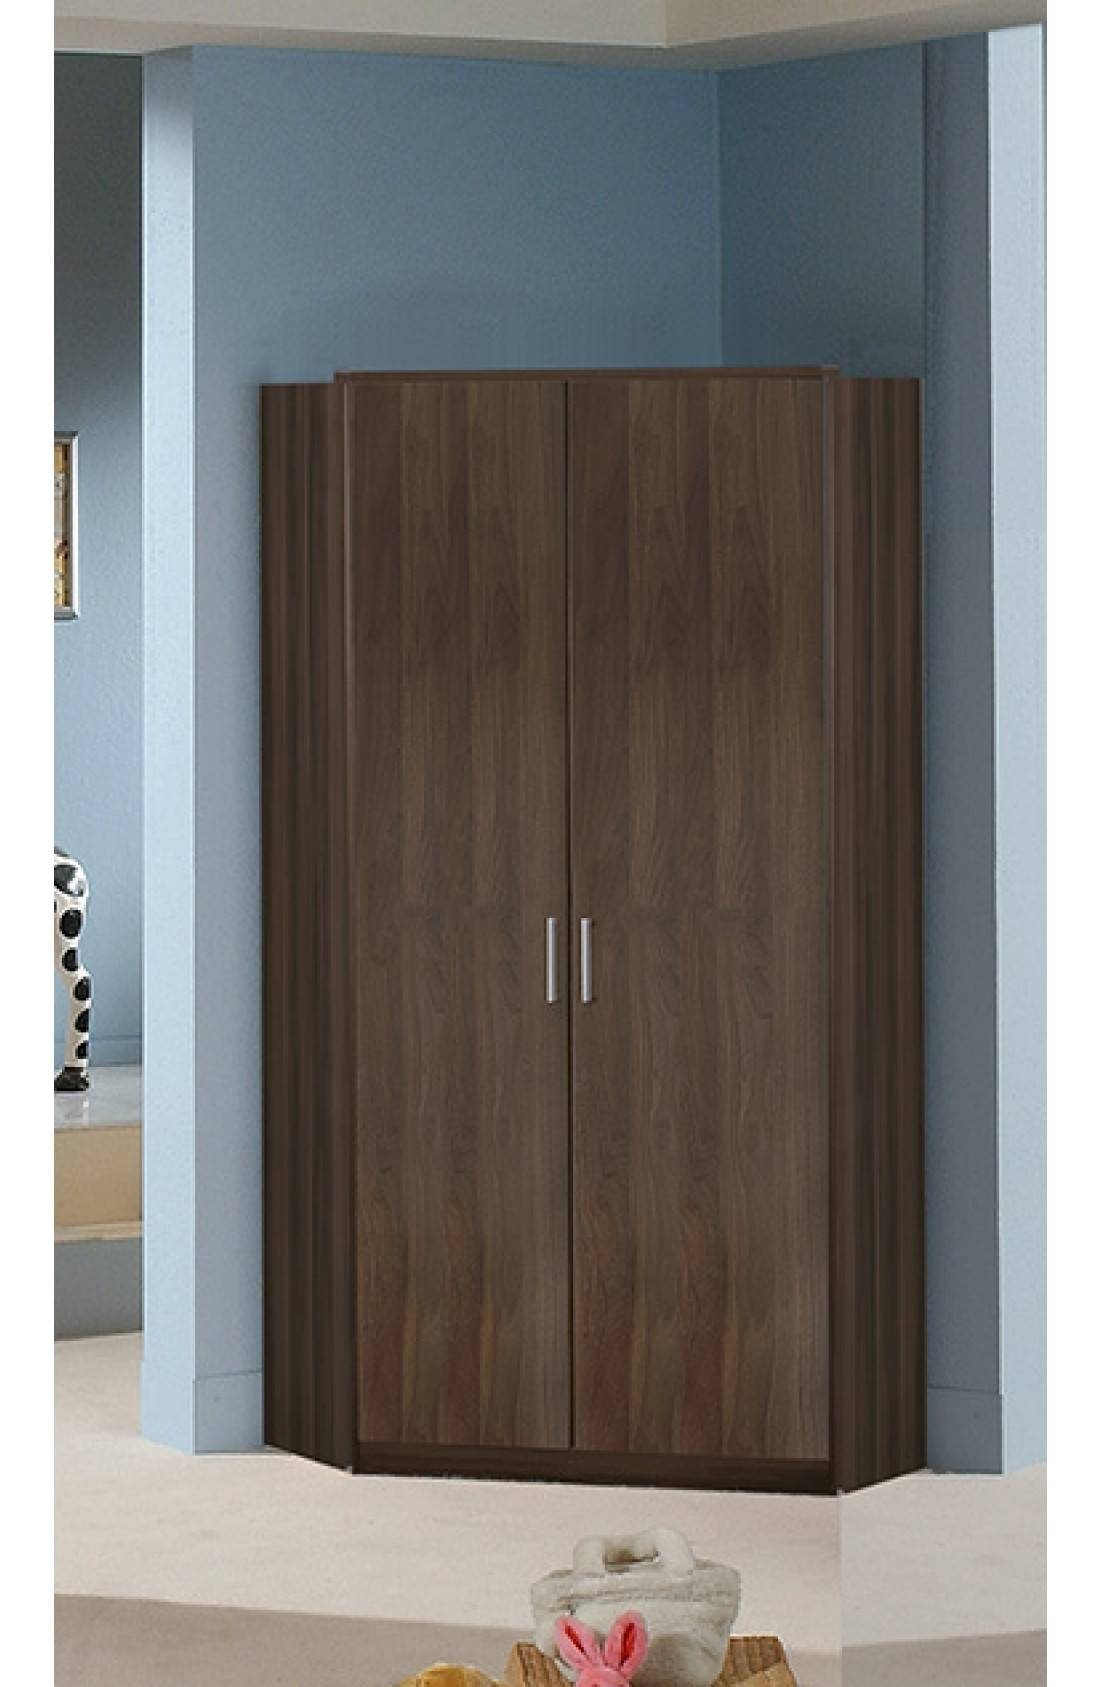 Slumberhaus 'berlin' German Made Modern Walnut 2 Door Corner Wardrobe With Regard To 2 Door Corner Wardrobes (View 10 of 15)